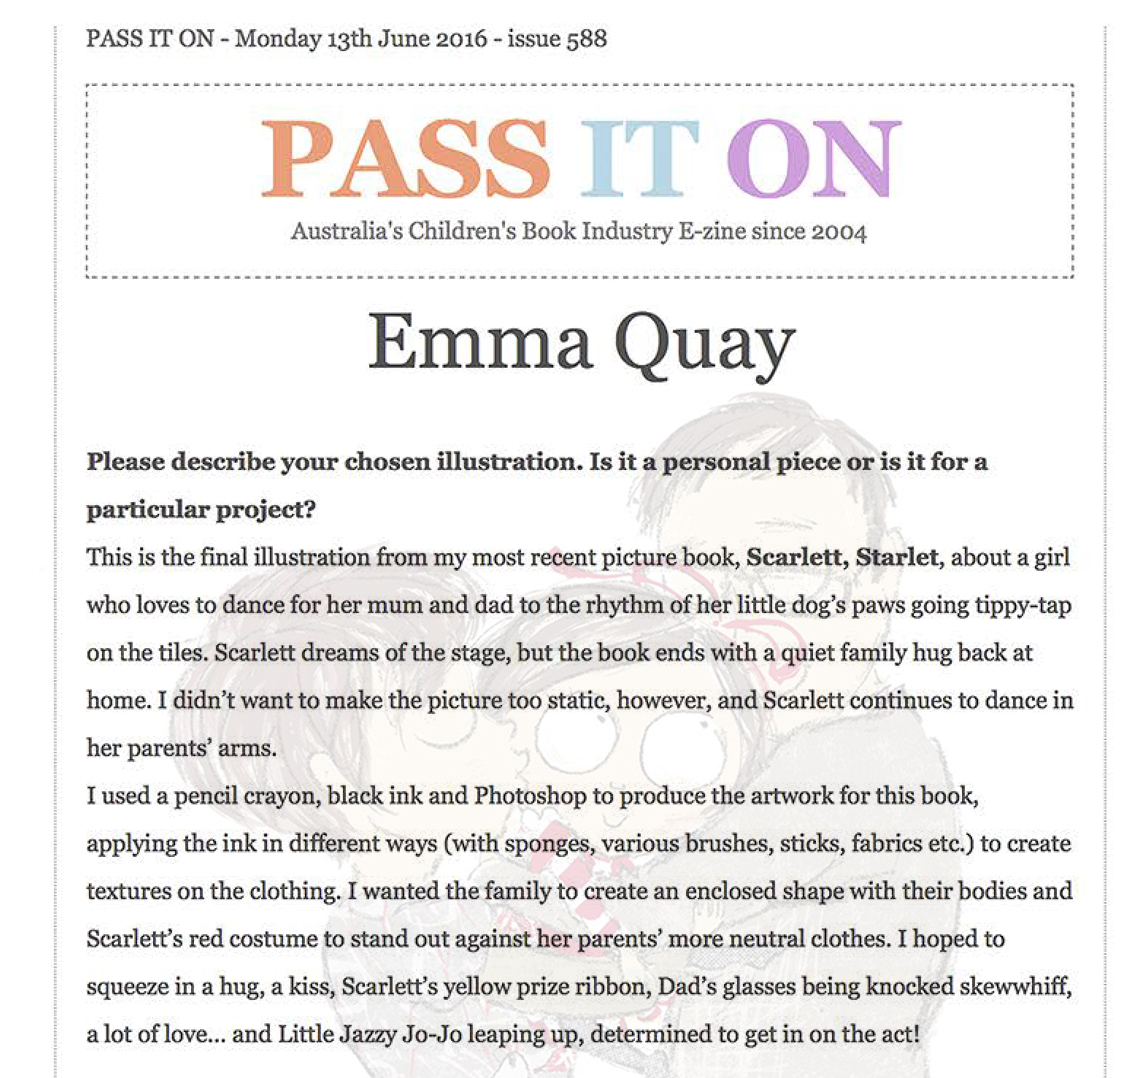 PASS IT ON interview with Emma Quay, picture book illustrator and author, June 2016 • www.emmaquay.com